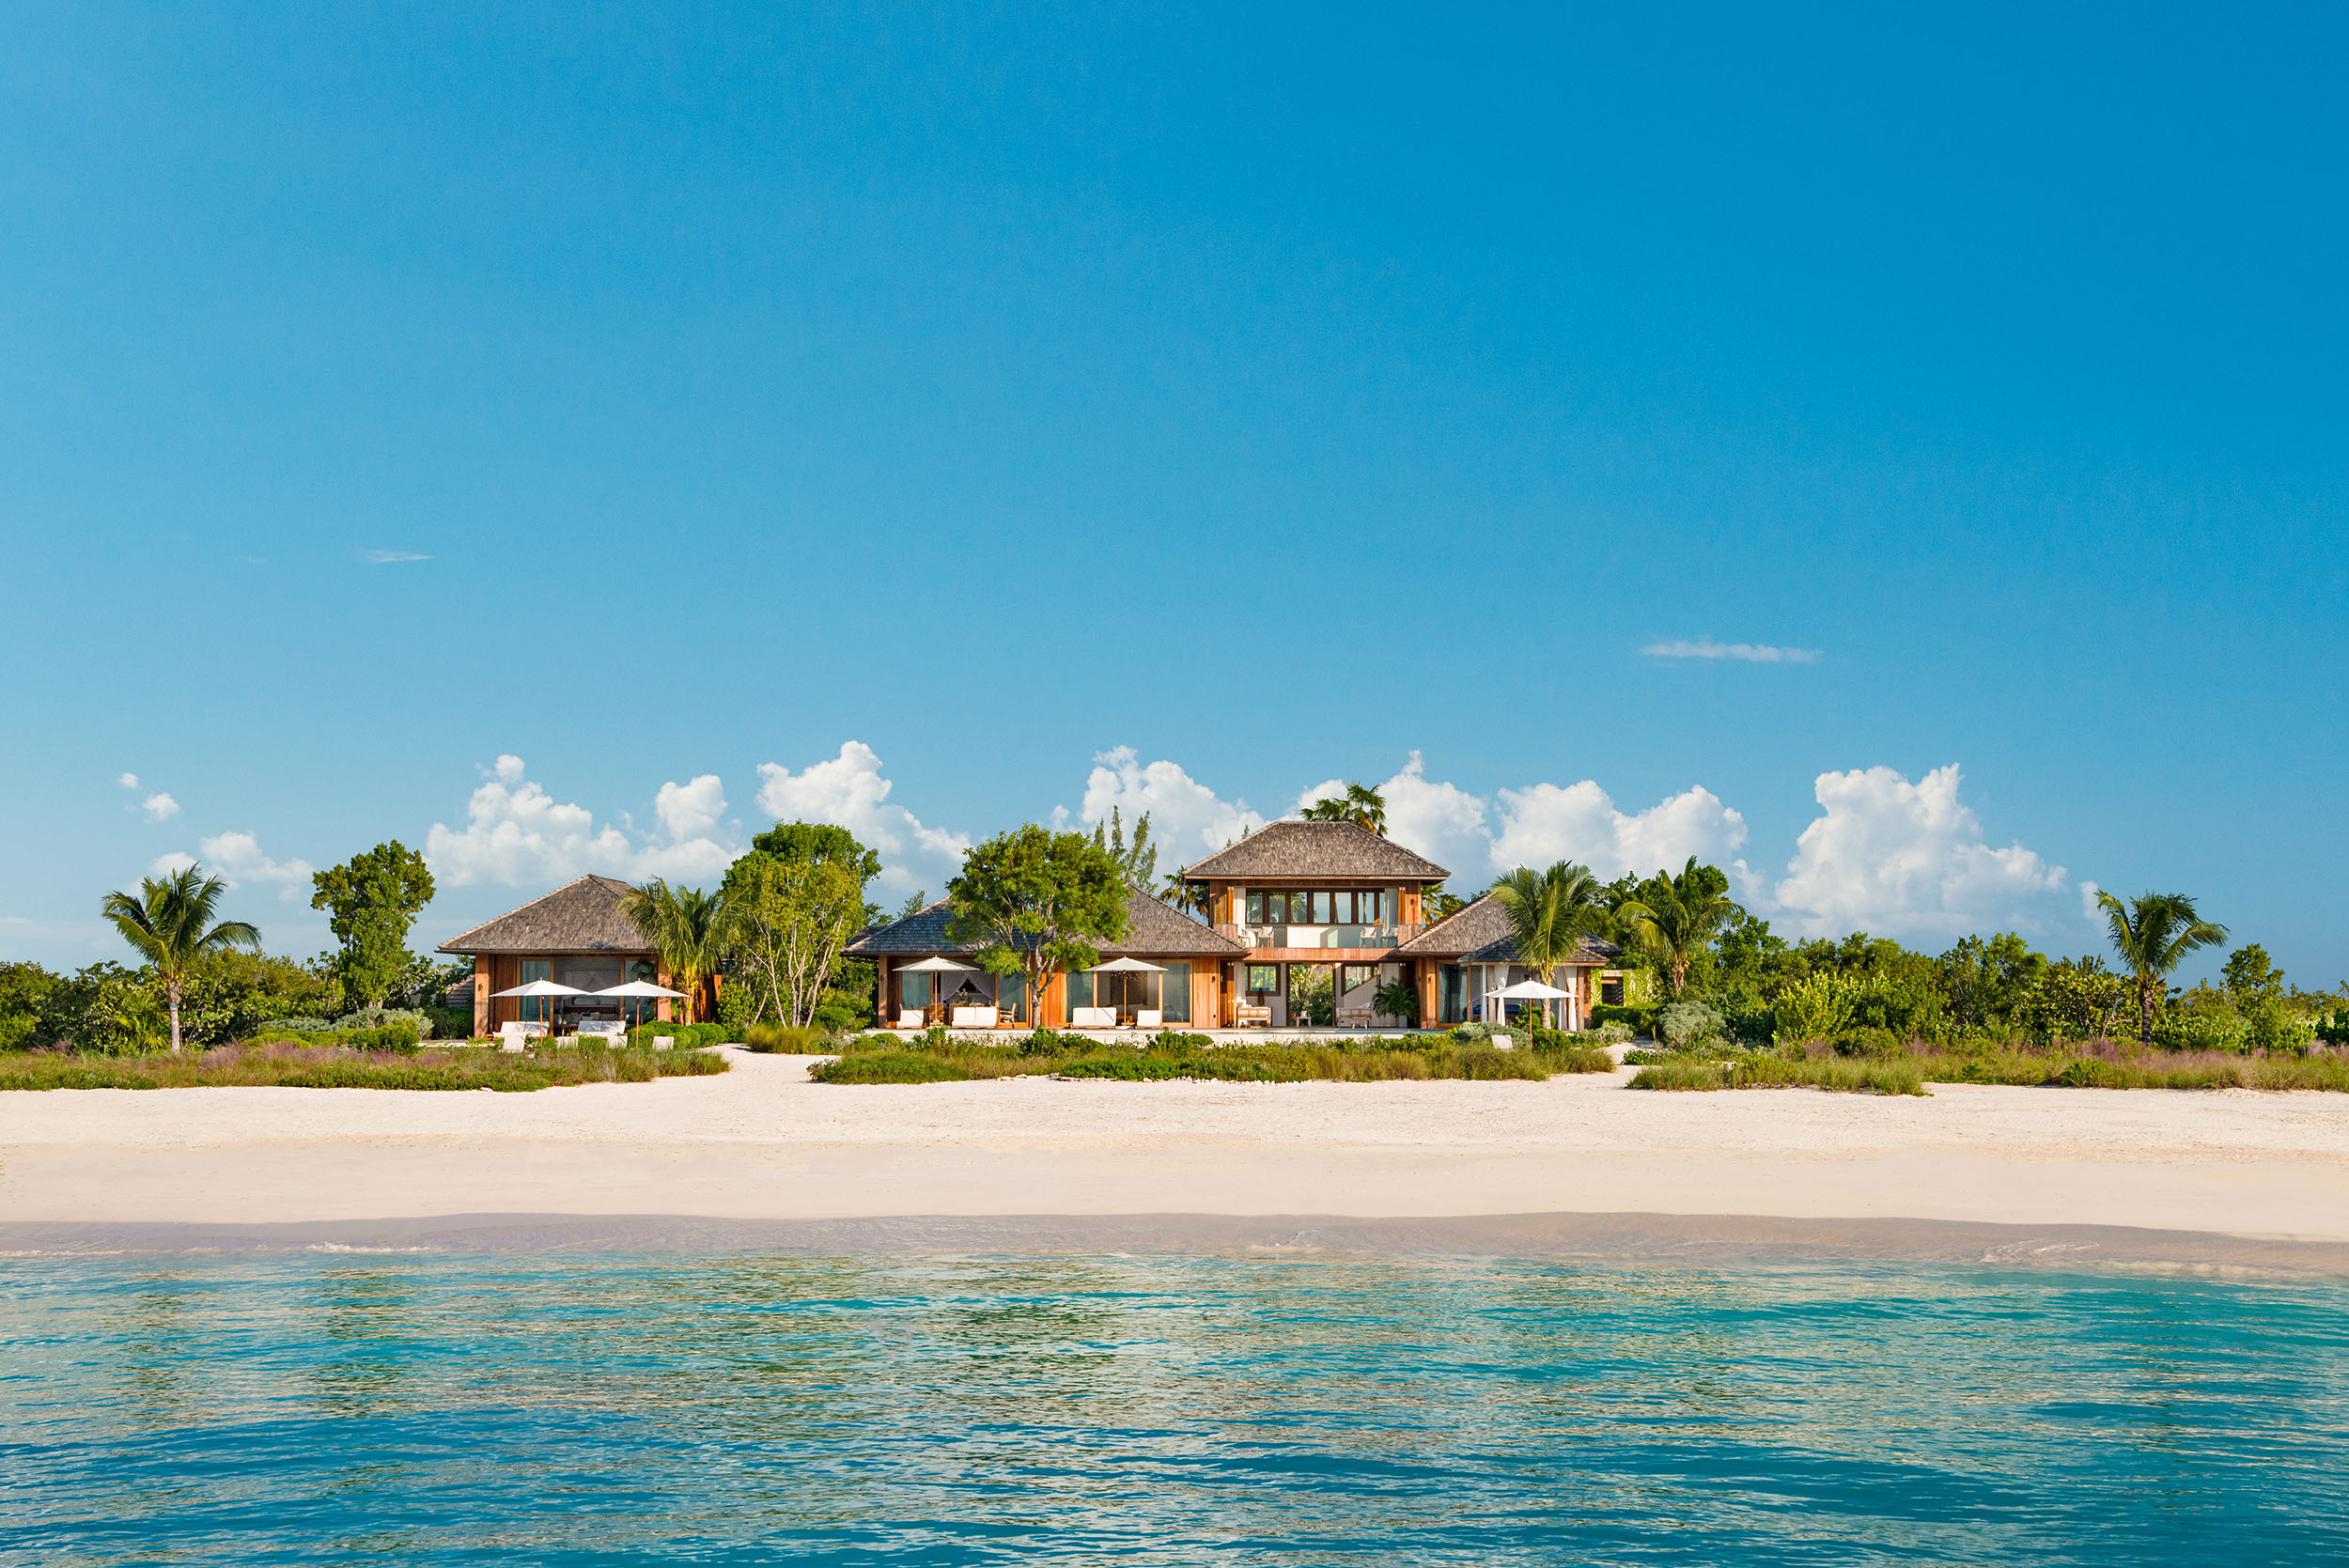 Serenity - view of the villa from the ocean